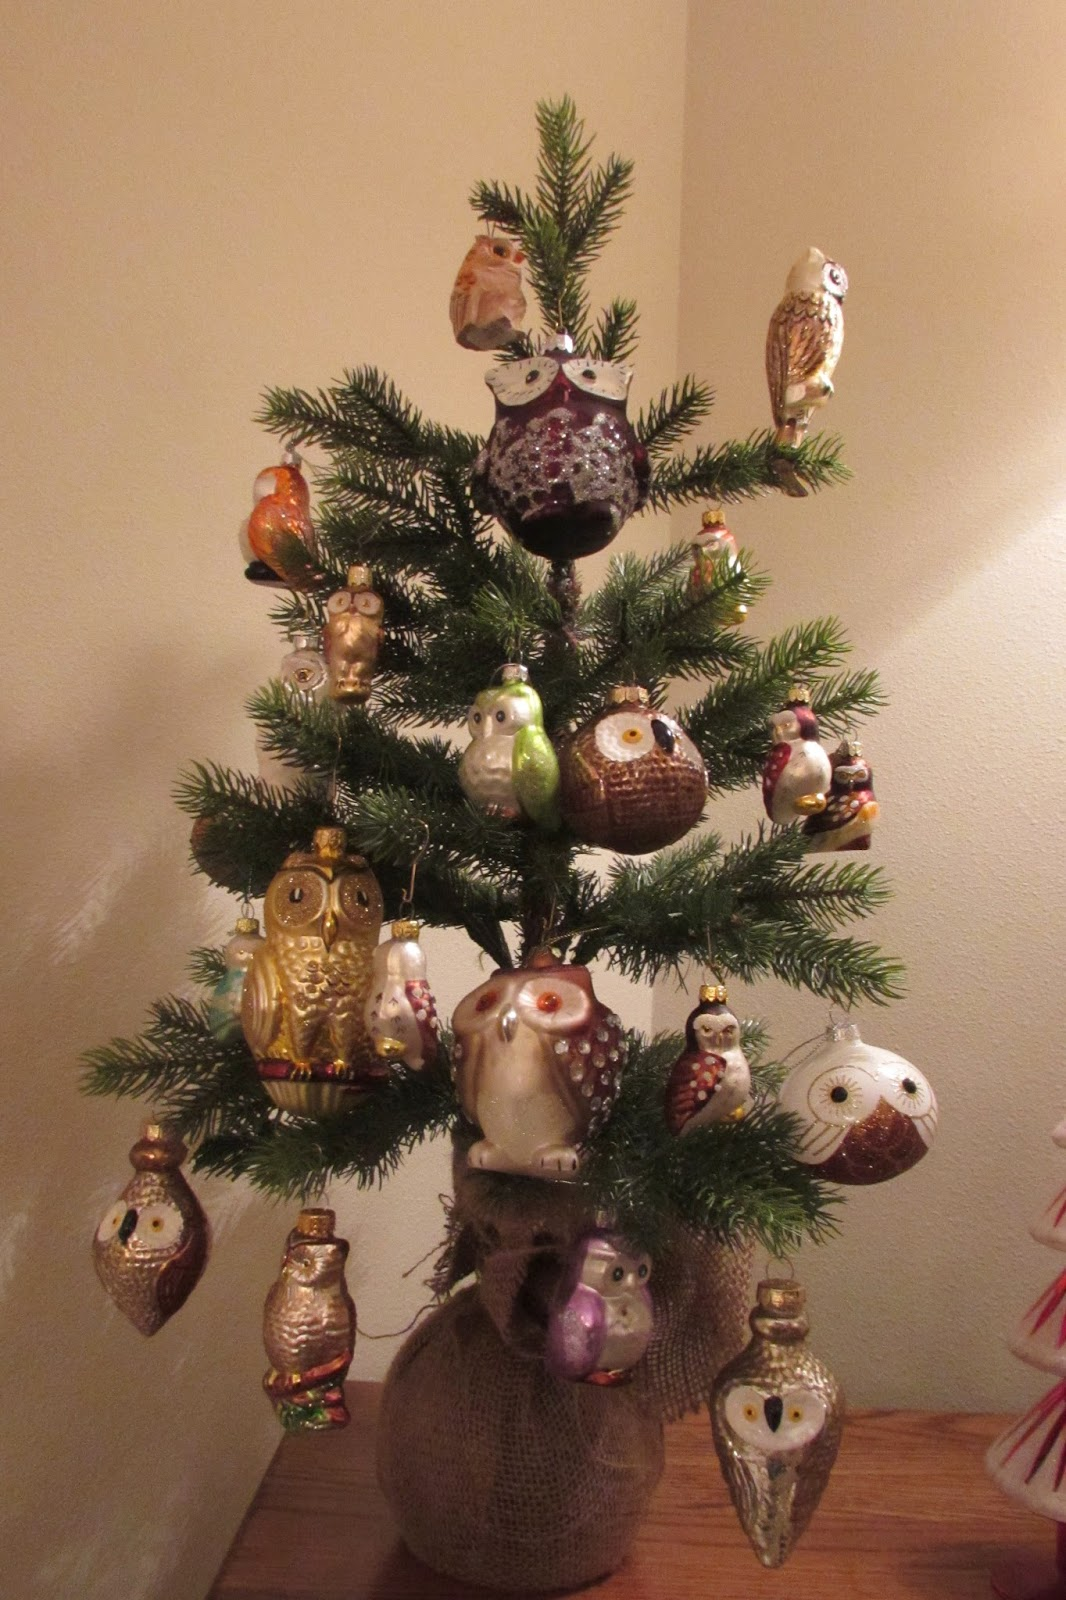 the owl tree which i featured earlier - Bird Christmas Decorations